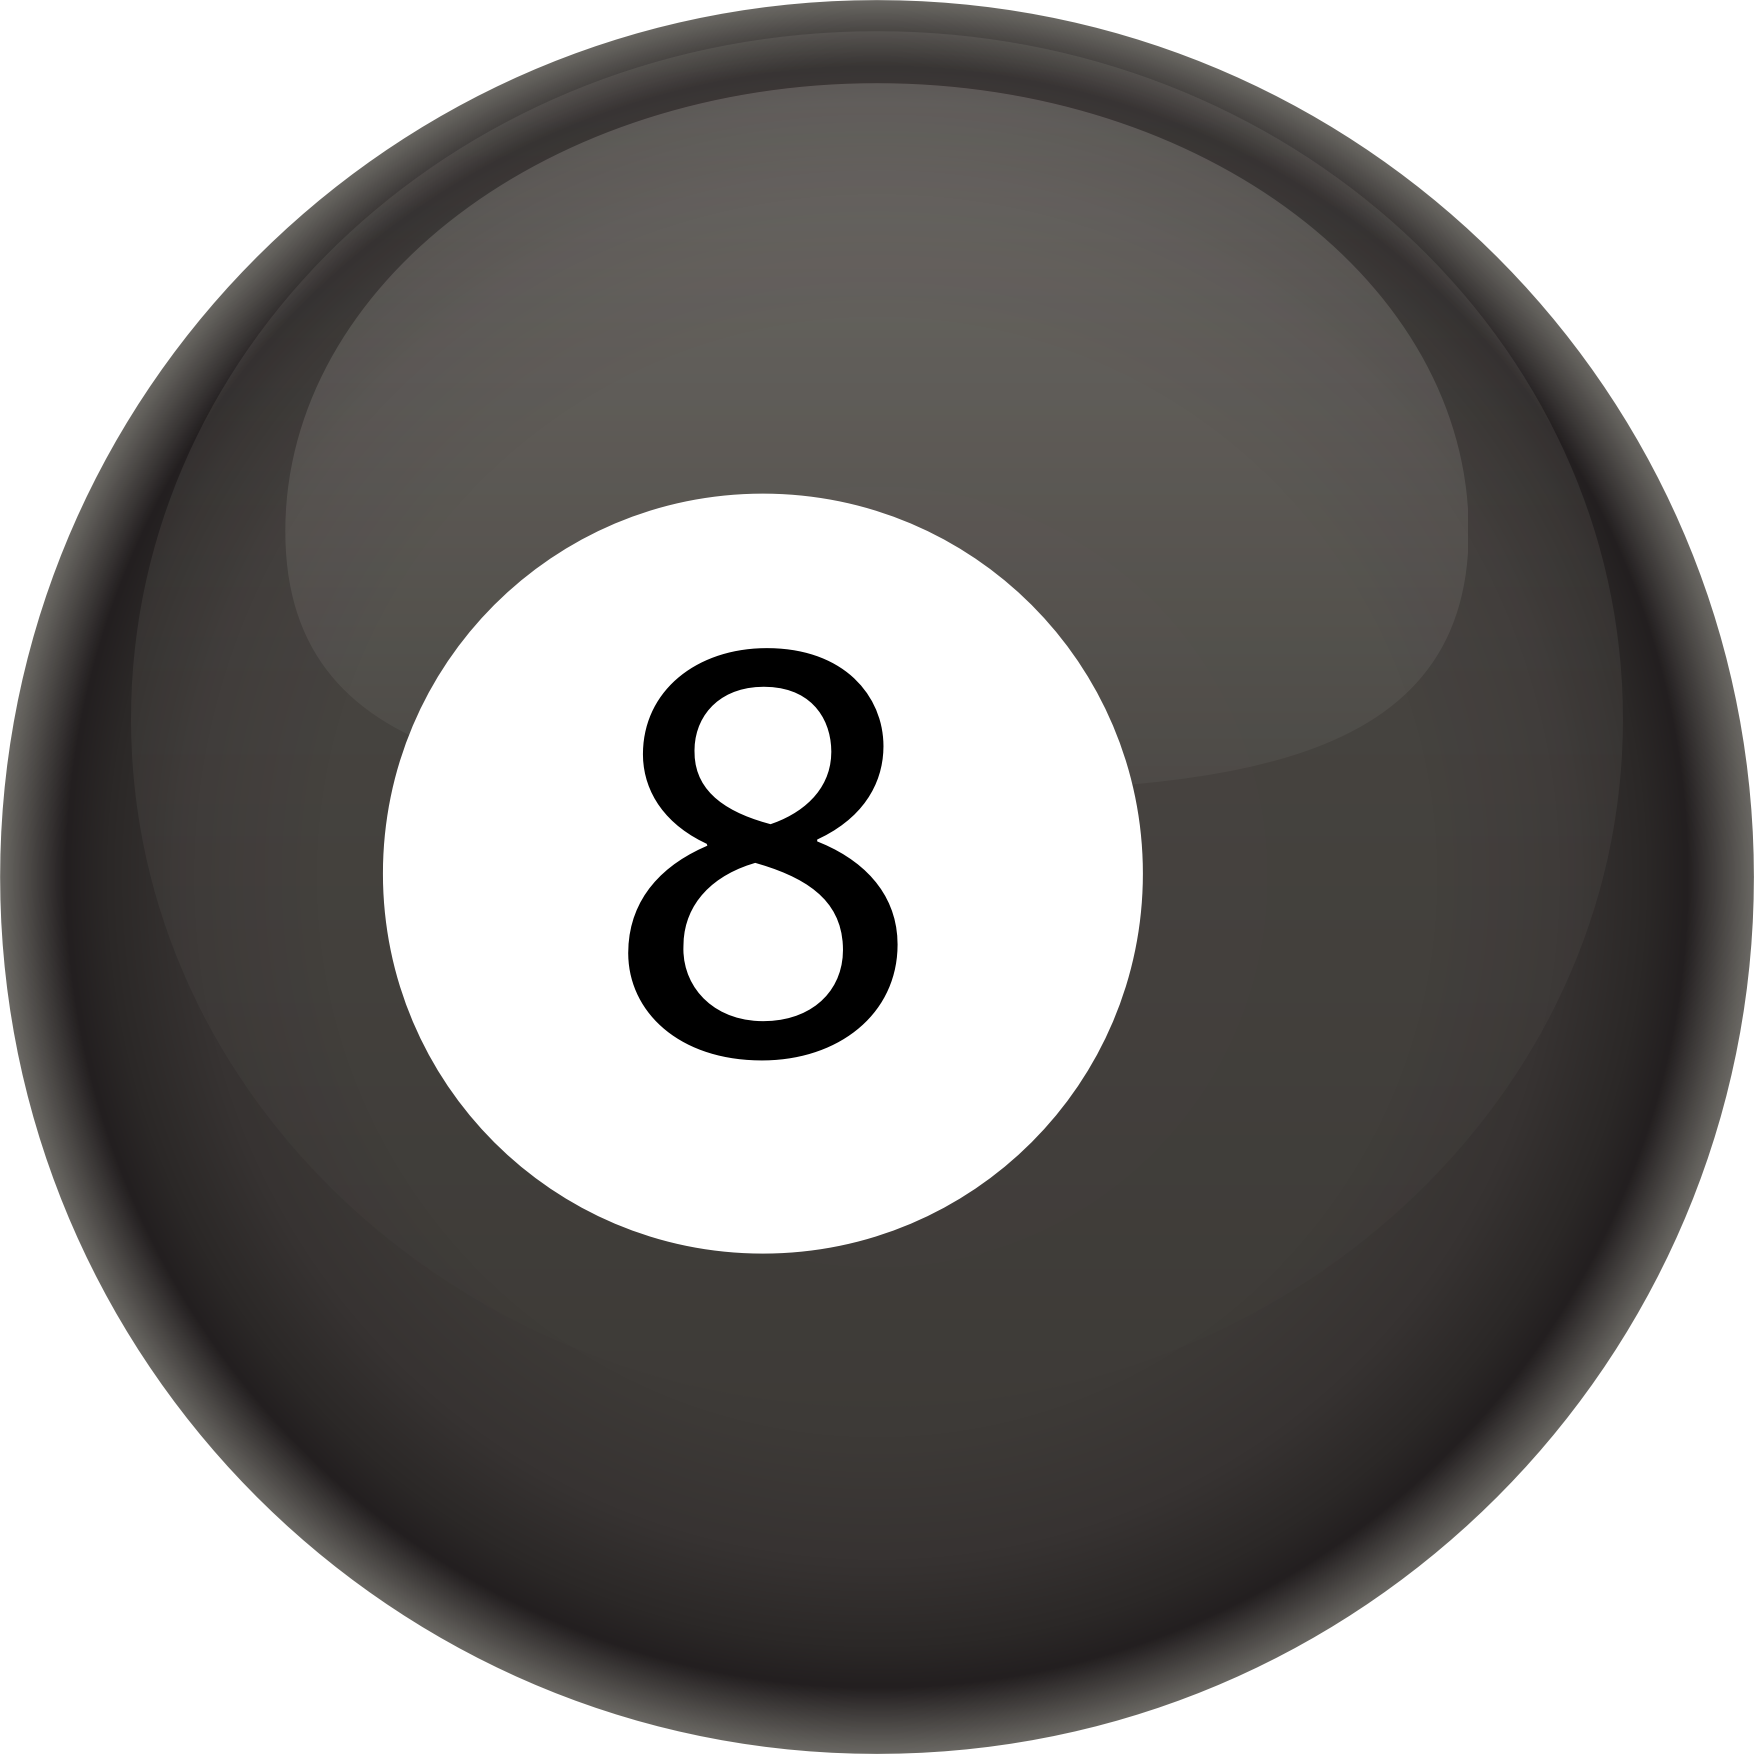 Free 8 Ball Cliparts, Download Free Clip Art, Free Clip Art.